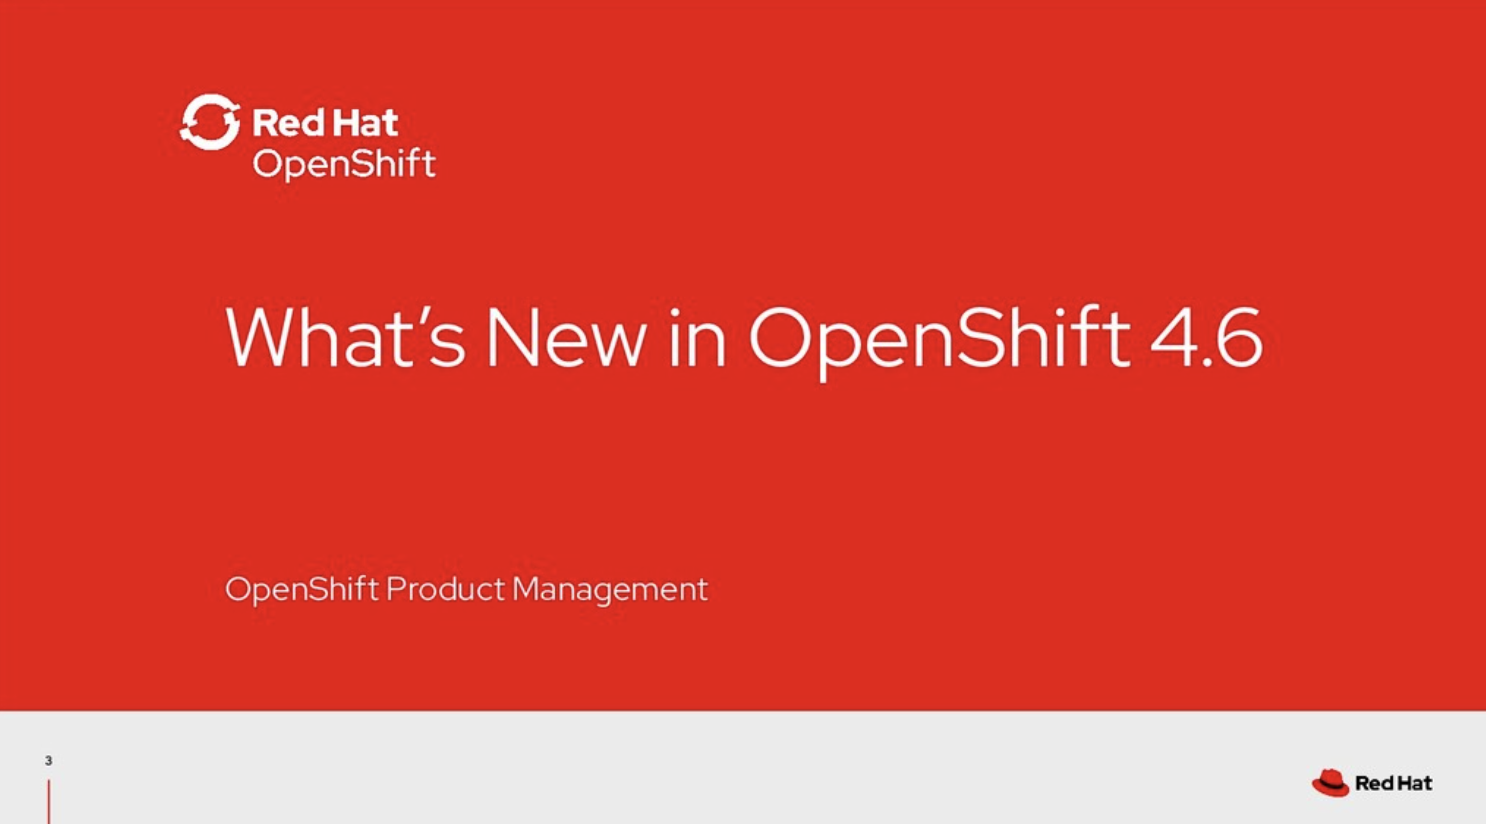 Meeting #1 - Red Hat (What's new in OpenShift 4.6?)